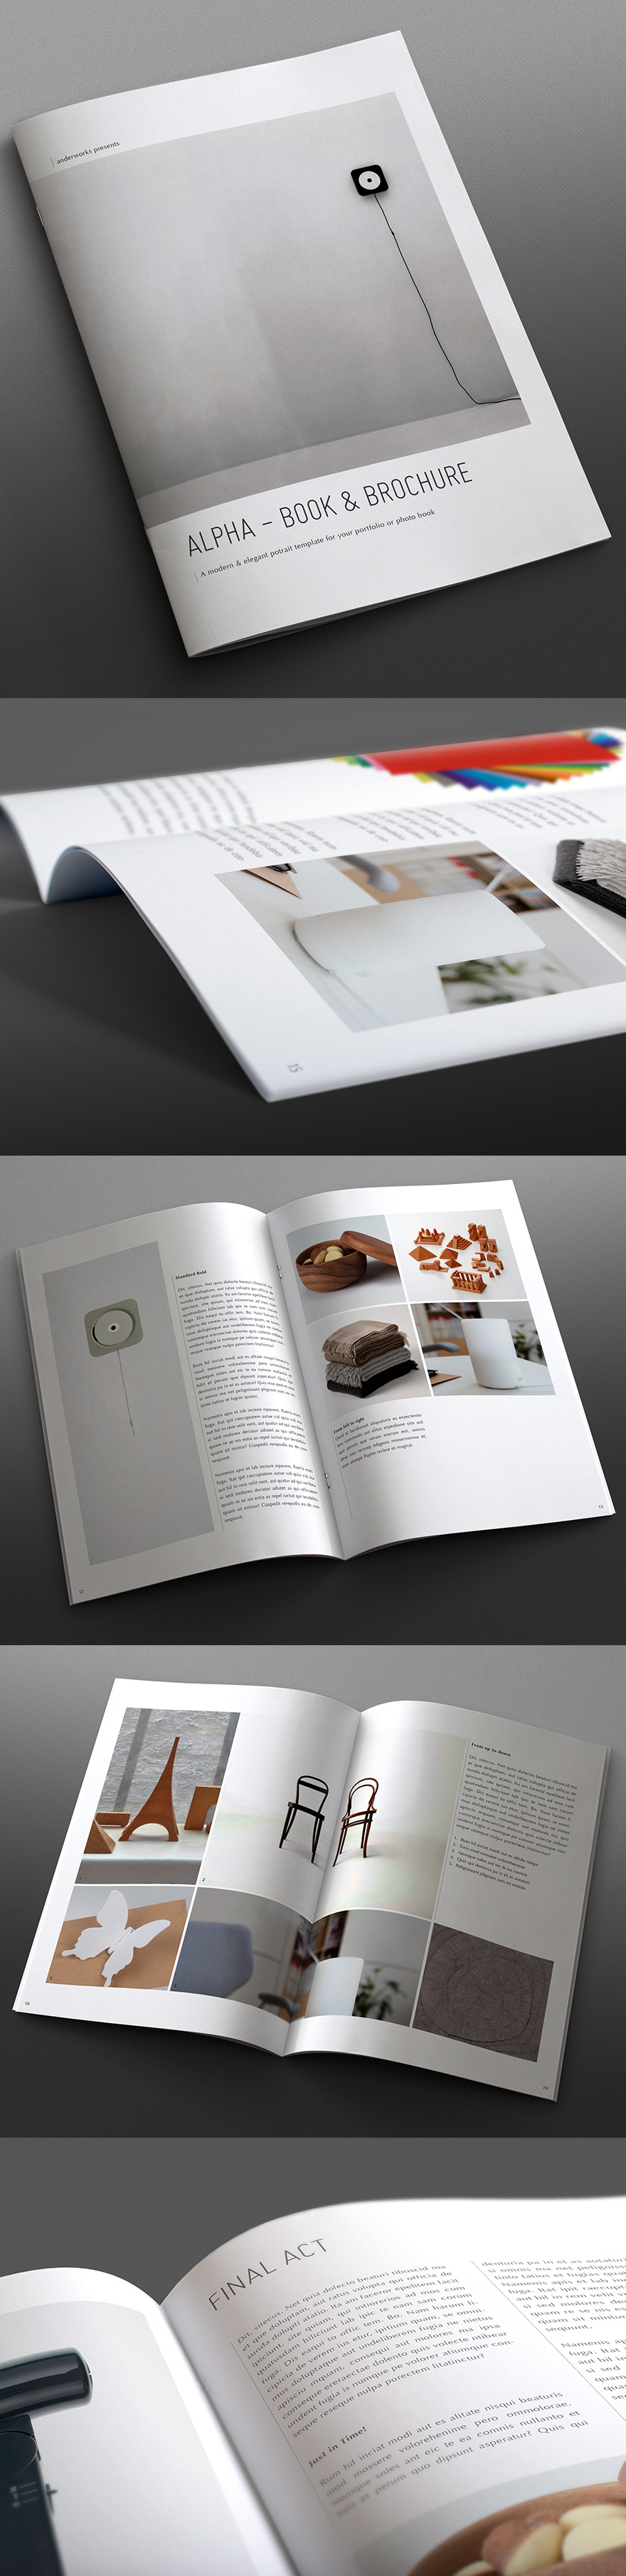 book brochure template - alpha series book brochure template portrait